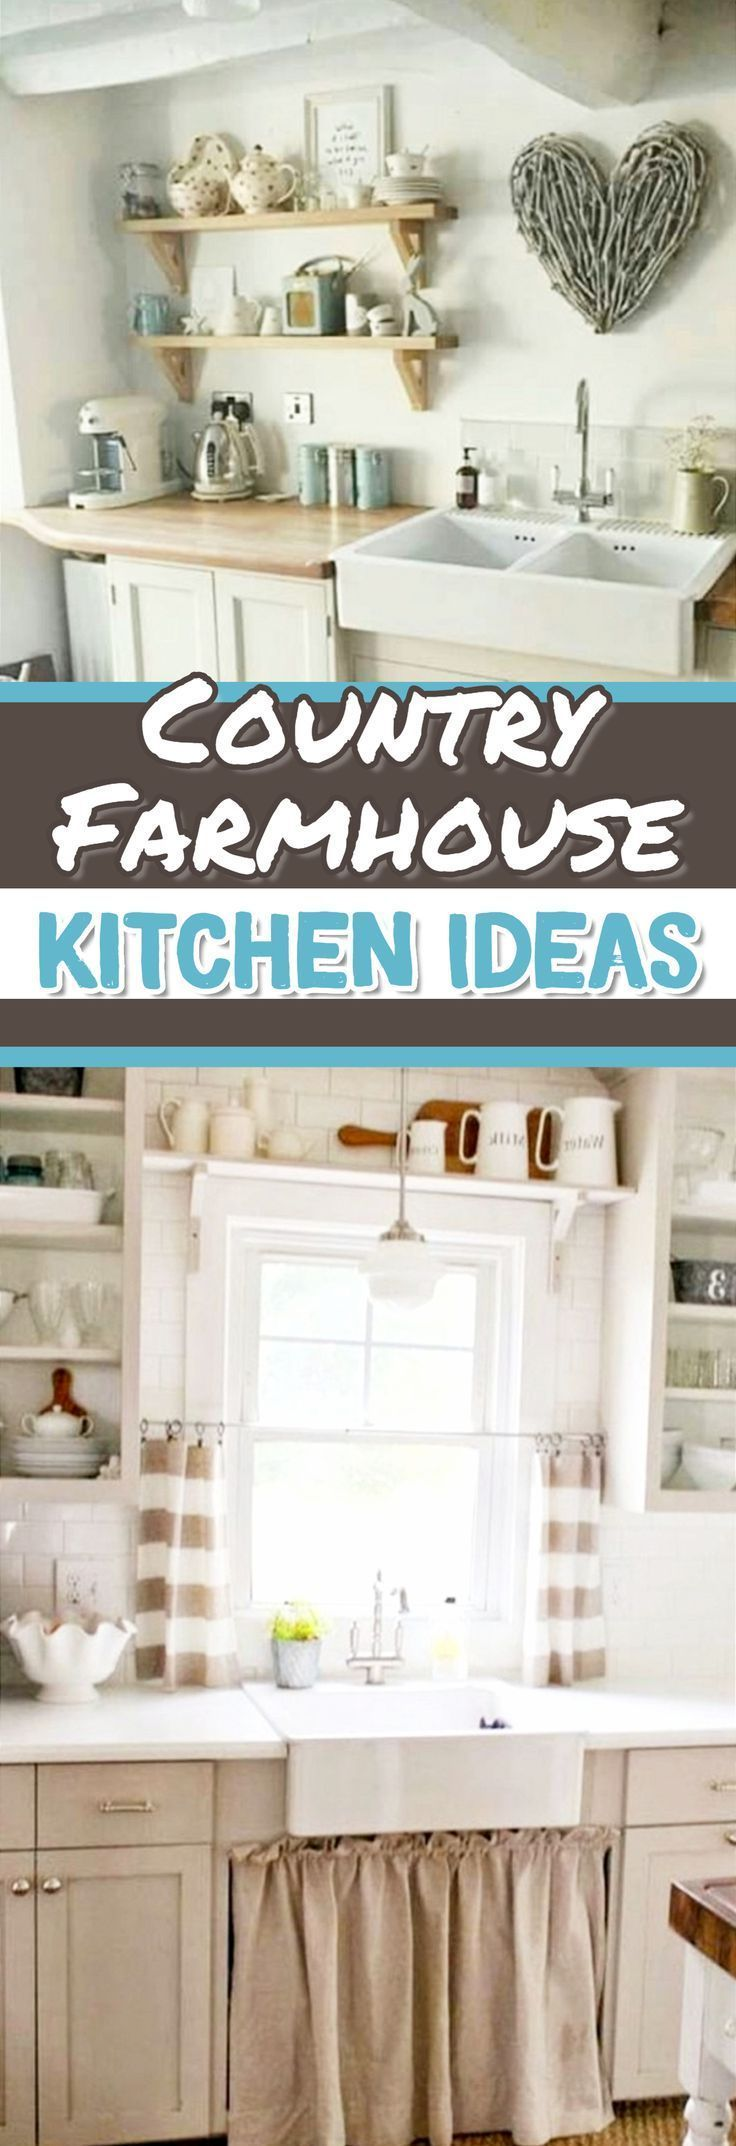 153 best French Country Kitchen Decor images on Pinterest